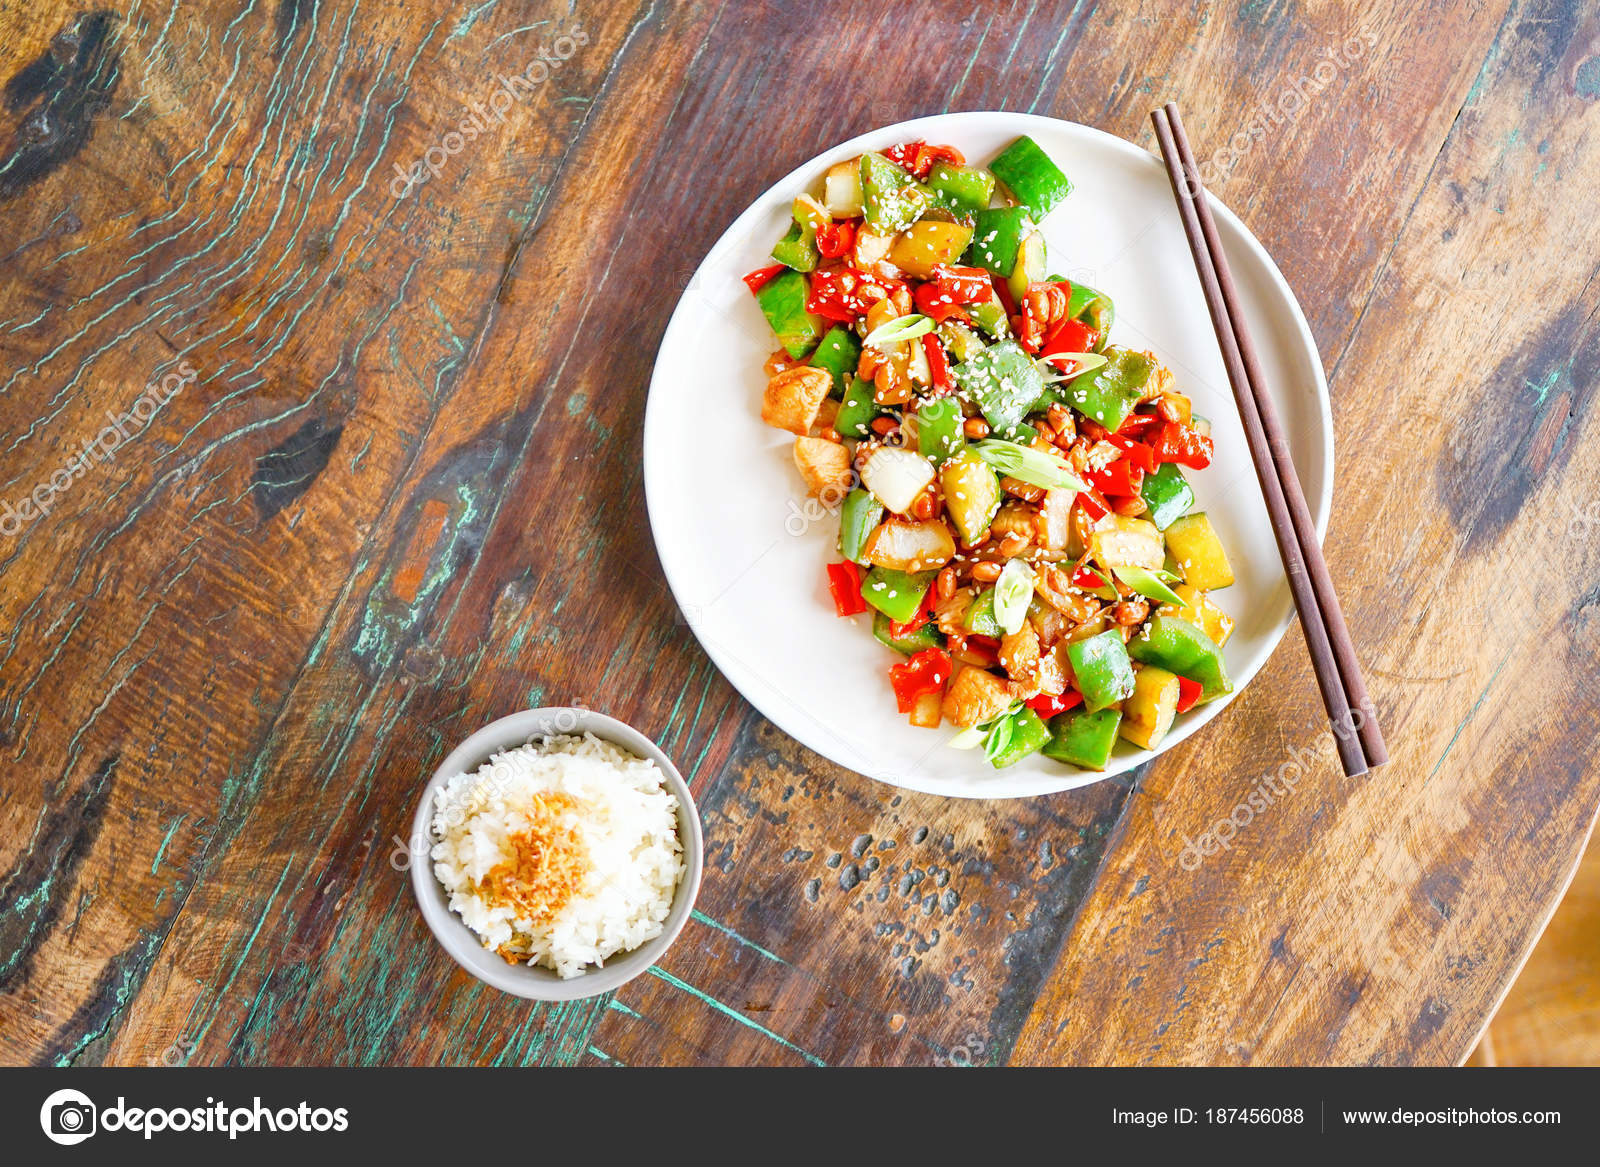 Chicken kong pao white plate light wooden table chinese food stock chicken kong pao on a white plate and on a light wooden table chinese food food sticks in the frame the hand holds the dumpling with chopsticks forumfinder Gallery